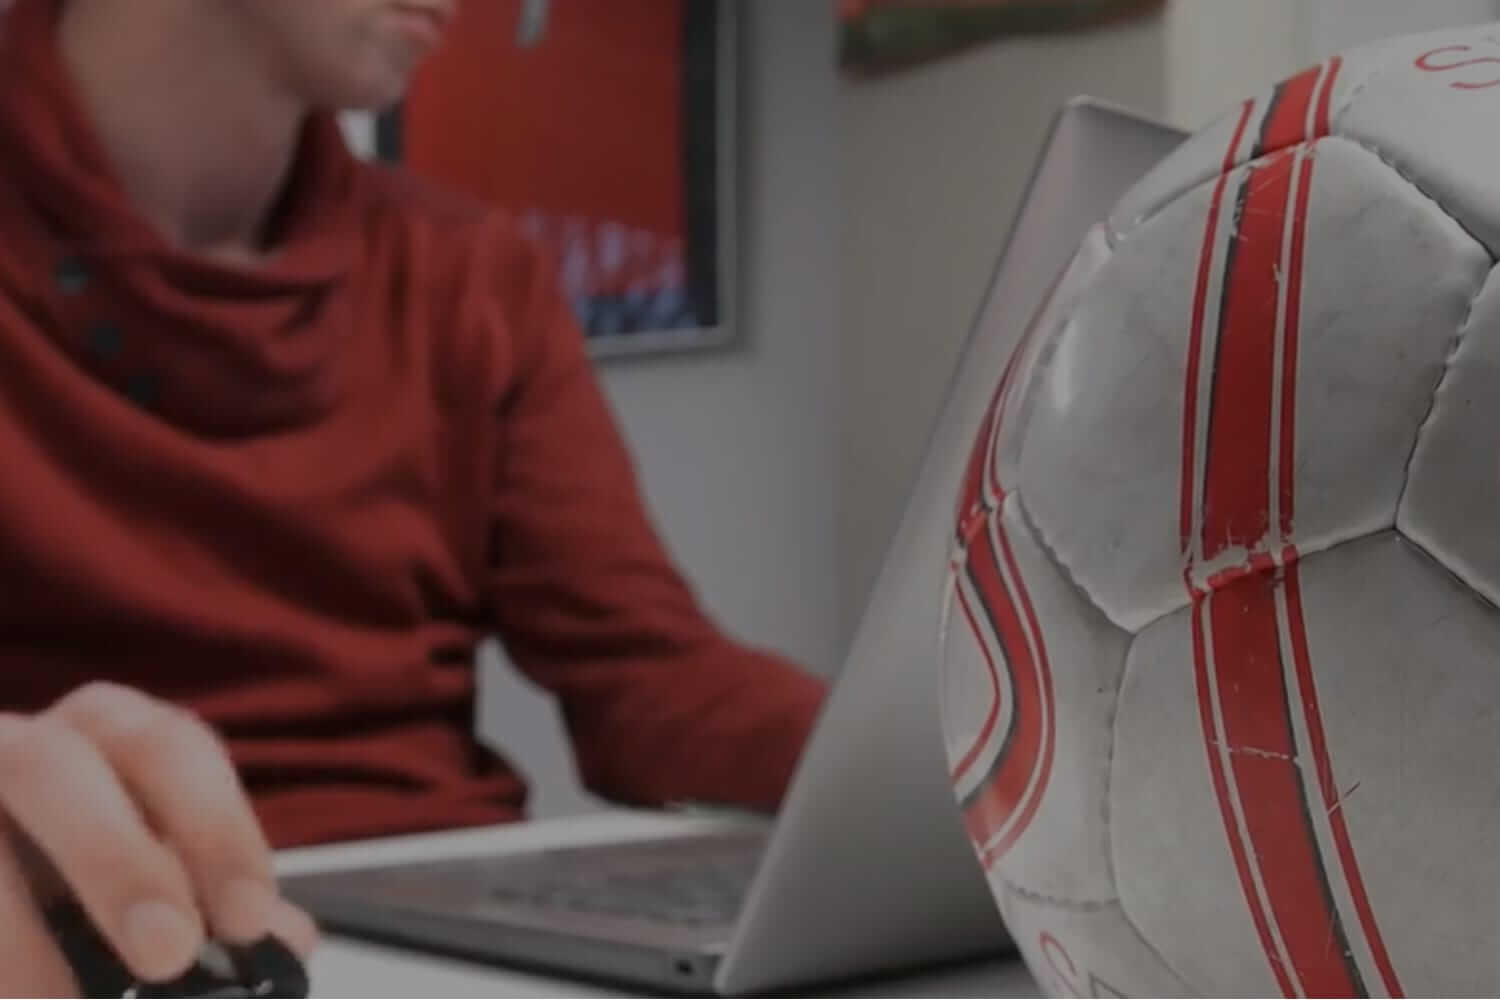 SCIS sport employee working on laptop with soccer ball